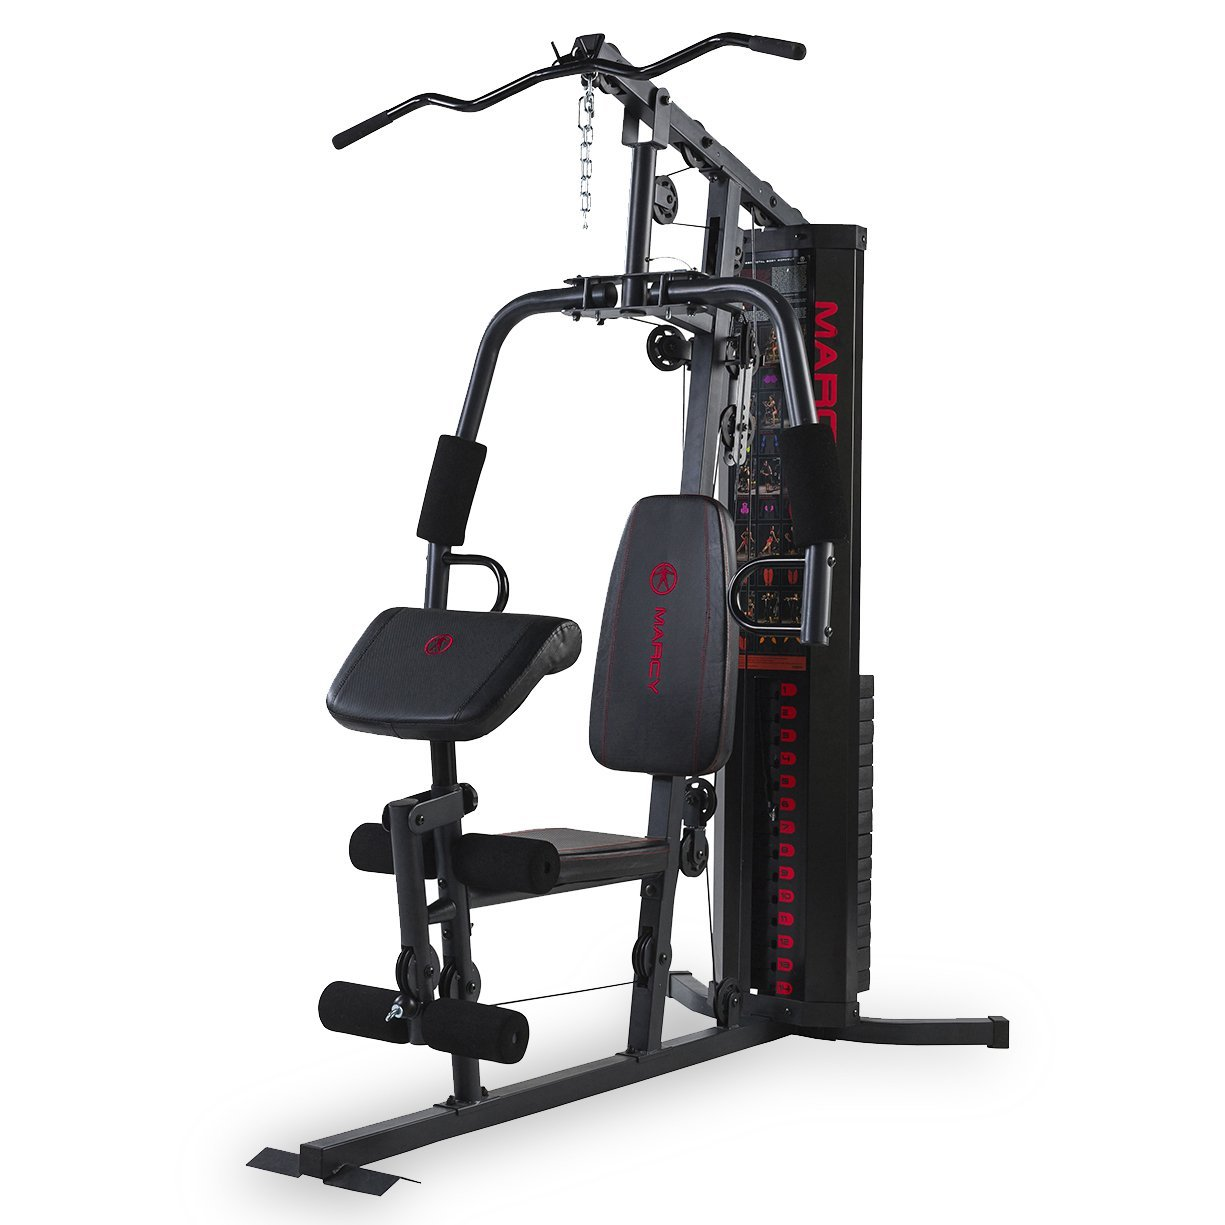 Marcy Eclipse HG3000 Compact Home Gym Review